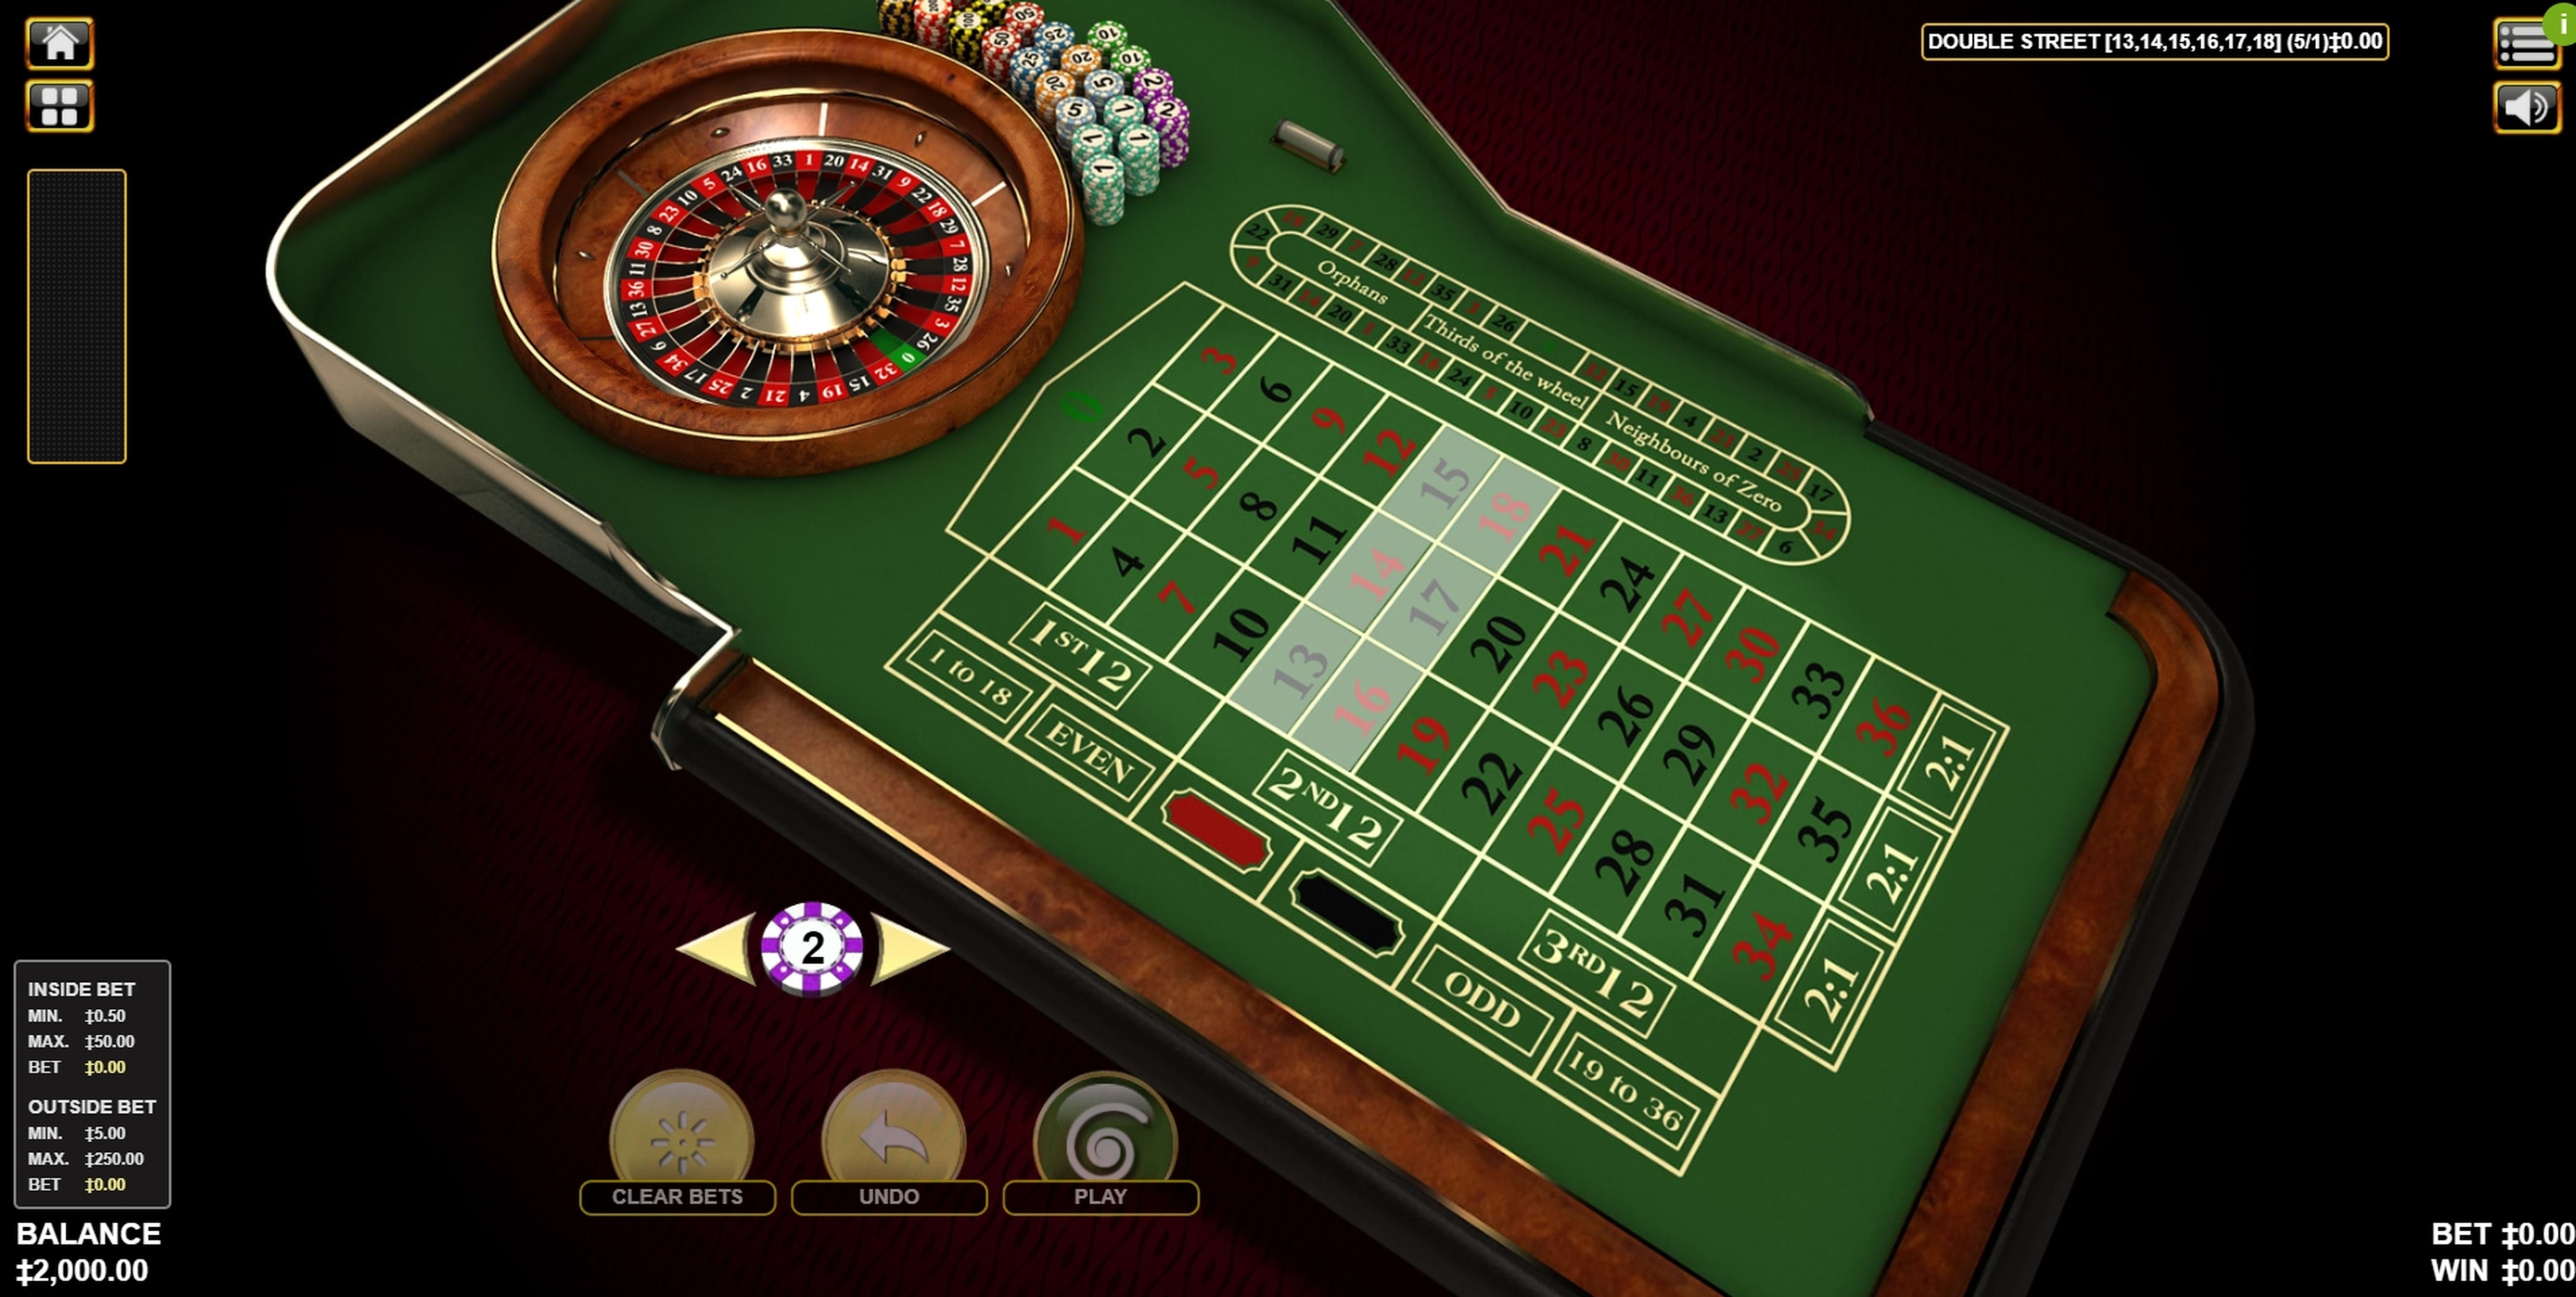 Reels in Roulette (Habanero) Slot Game by Habanero